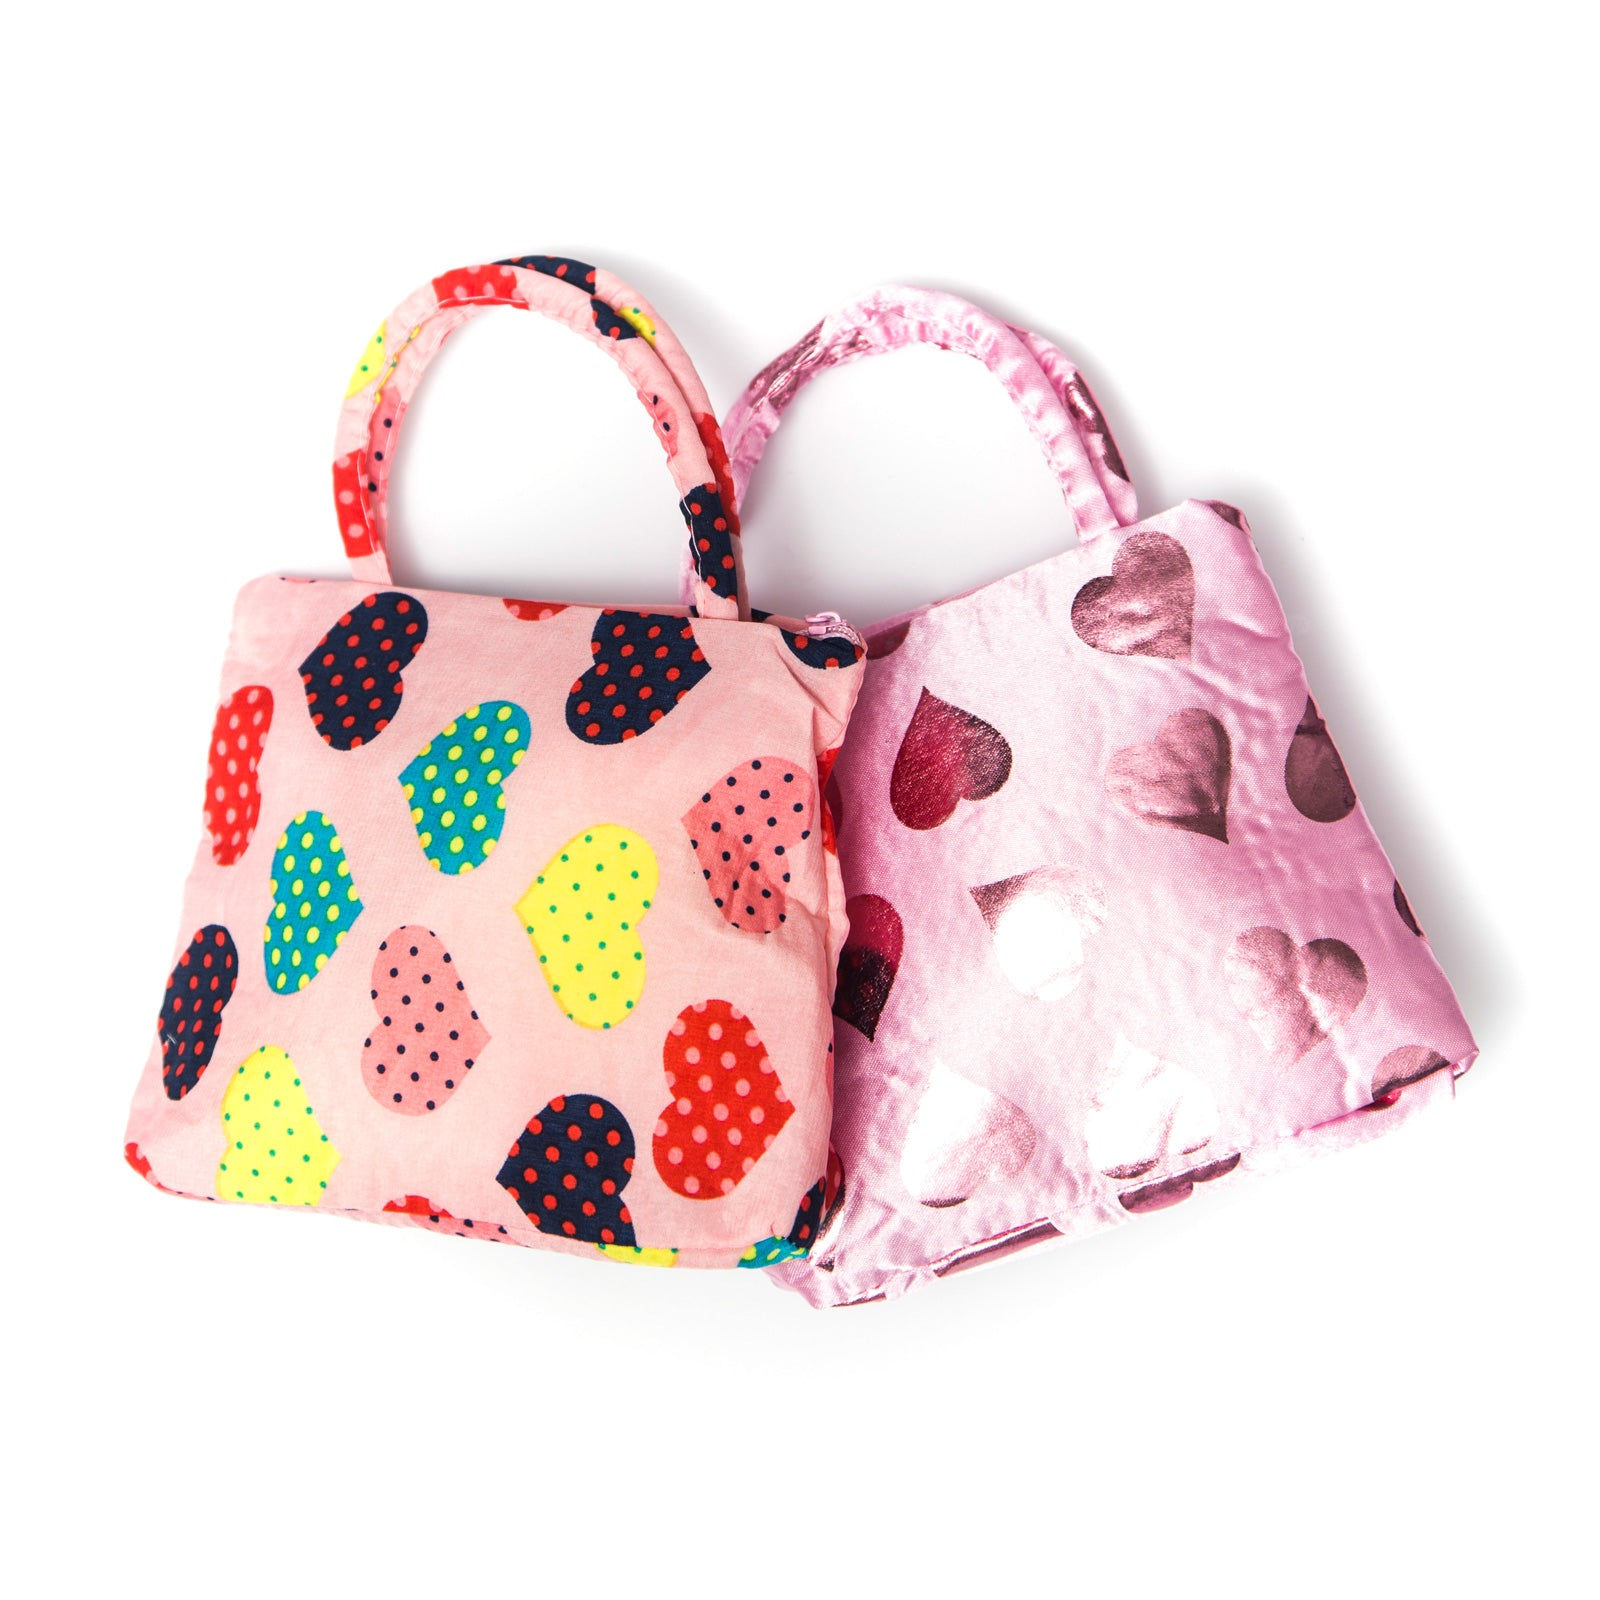 Hearts bag short handle